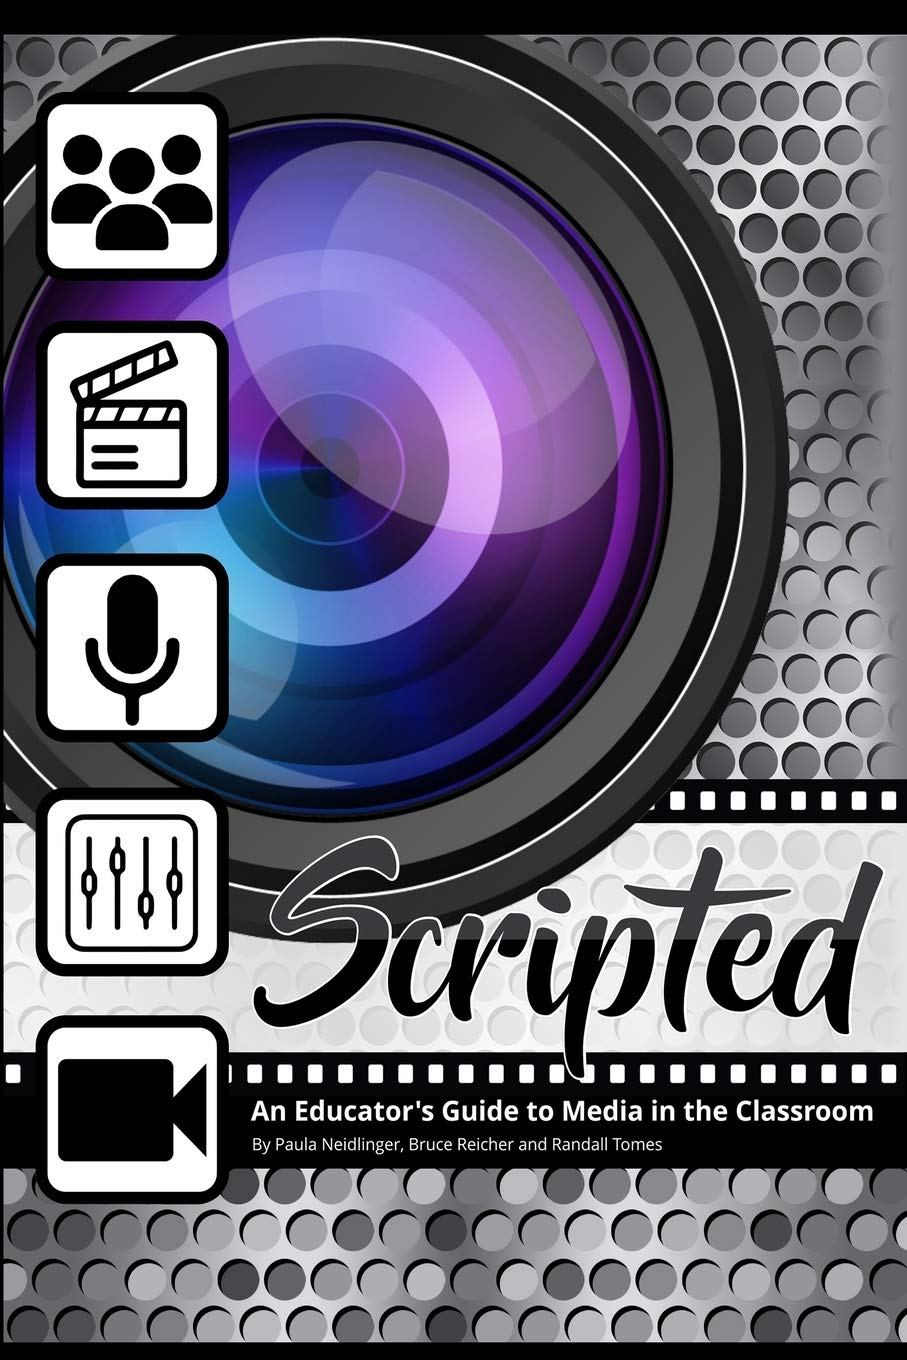 Image OfScripted: An Educator's Guide To Media In The Classroom